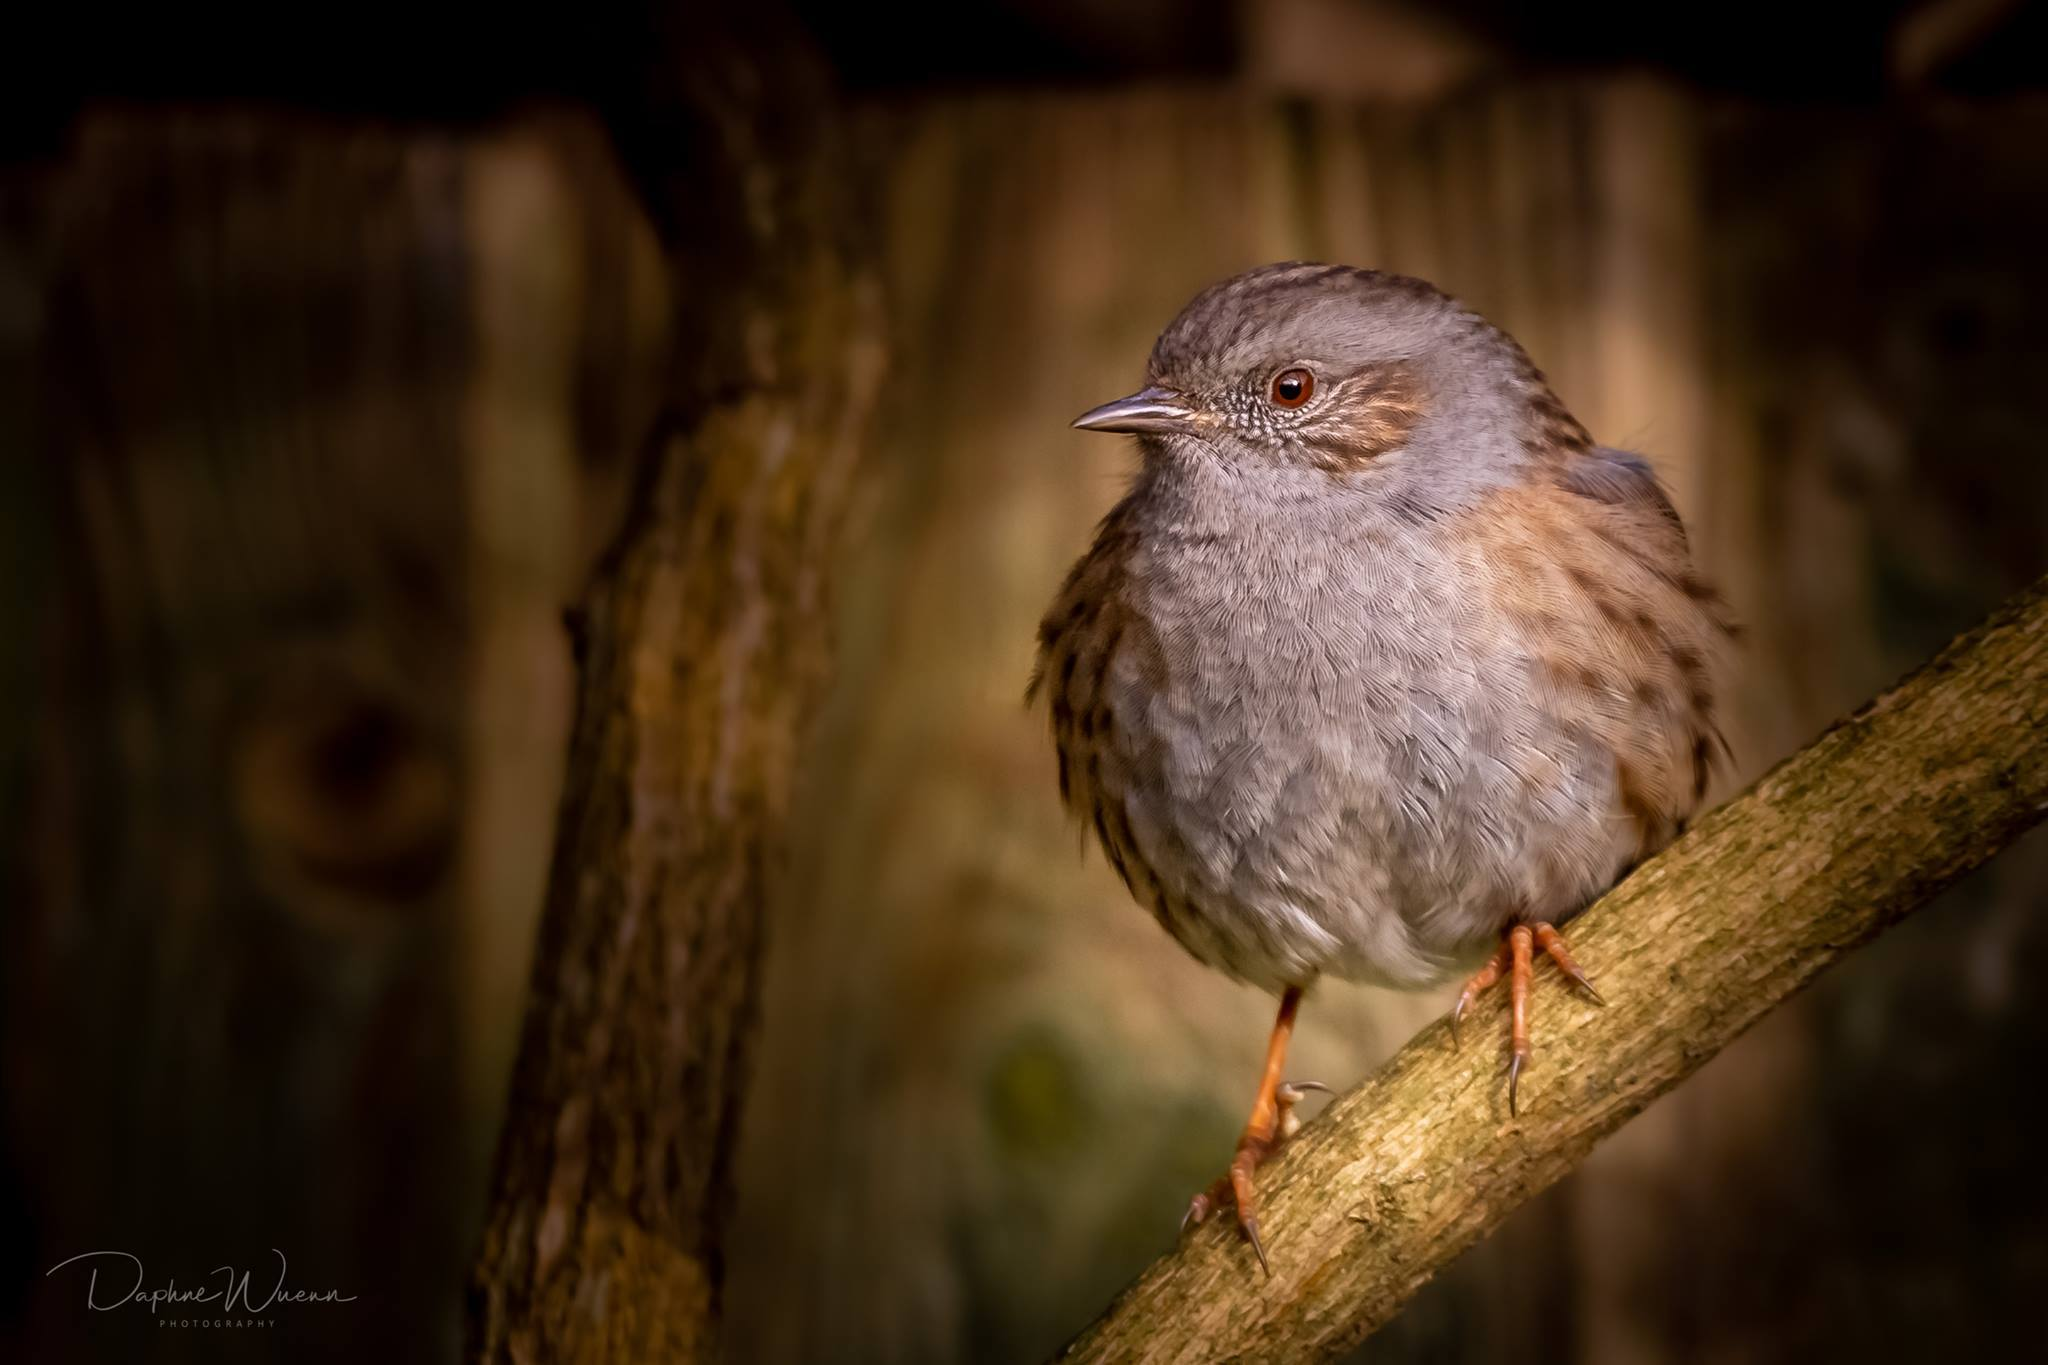 Daphne Wuenn captured this picture of a Dunnock in her back garden which she shared in the Daily Echo's Camera club group